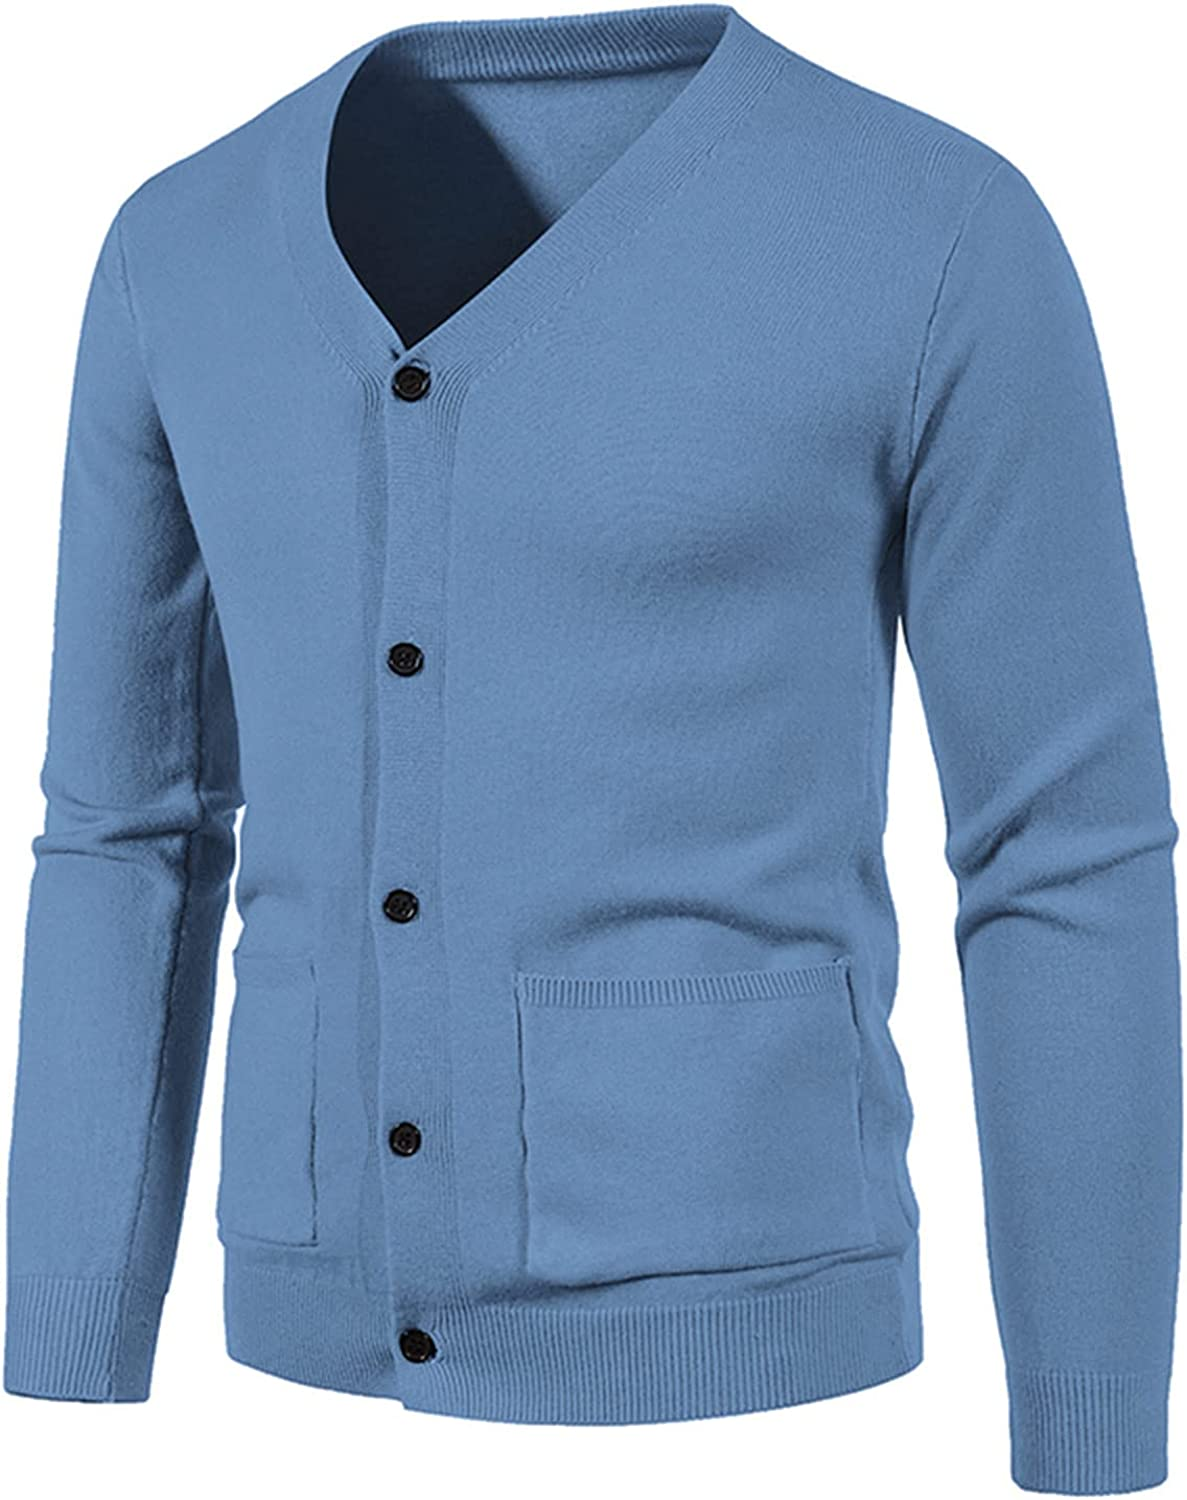 Mens Vintage Cardigan Sweater Button Down V-Neck Knitwear With Pocket Blouse